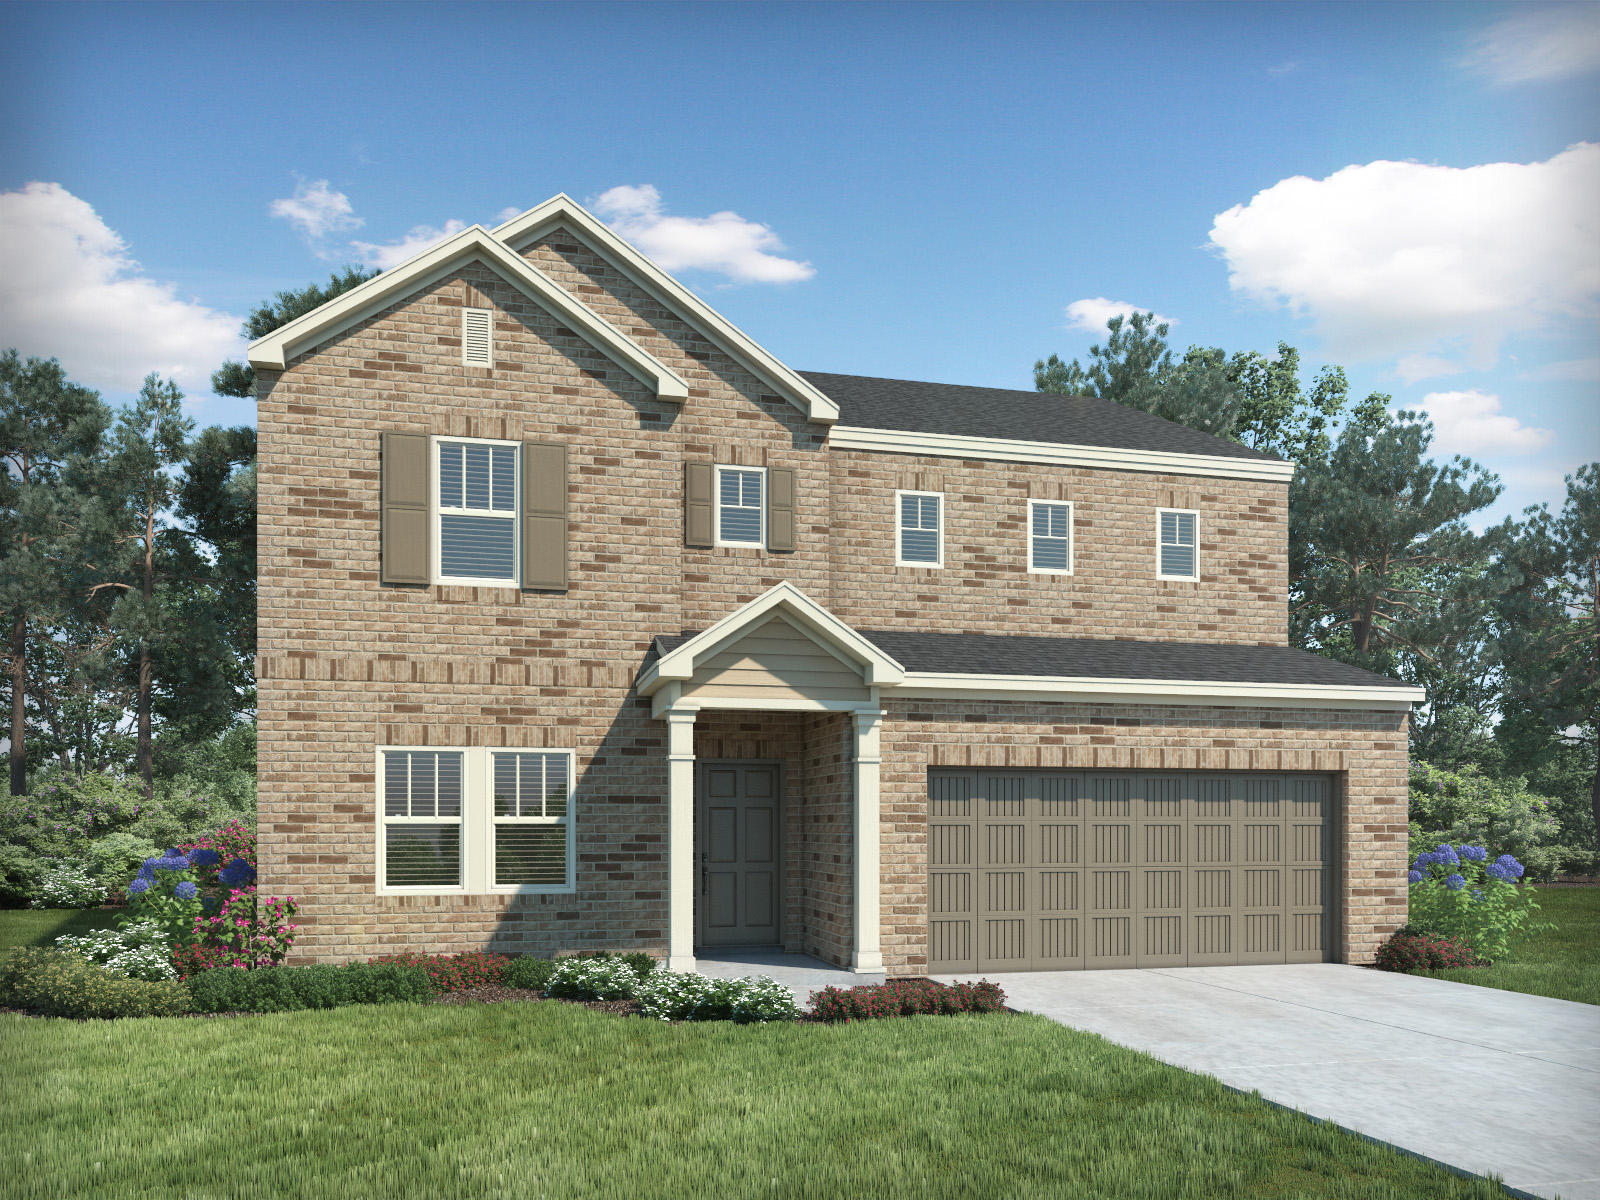 Shelby Plan, Goodlettsville, TN 37072 - 4 Bed, 2 5 Bath Single-Family Home  - 3 Photos | Trulia